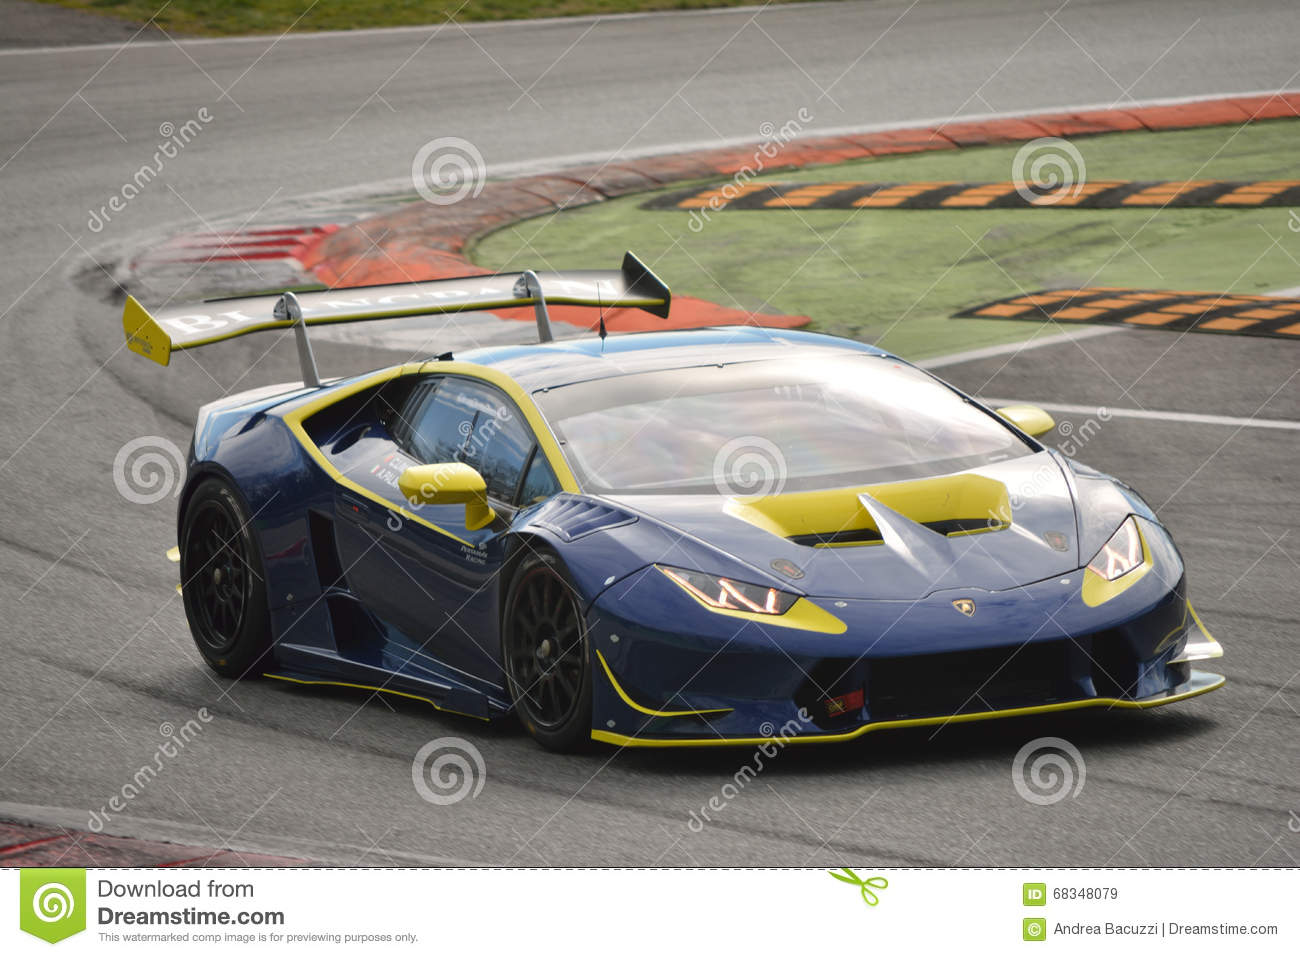 lamborghini hurac n super trofeo 2016 at monza editorial stock image. Black Bedroom Furniture Sets. Home Design Ideas